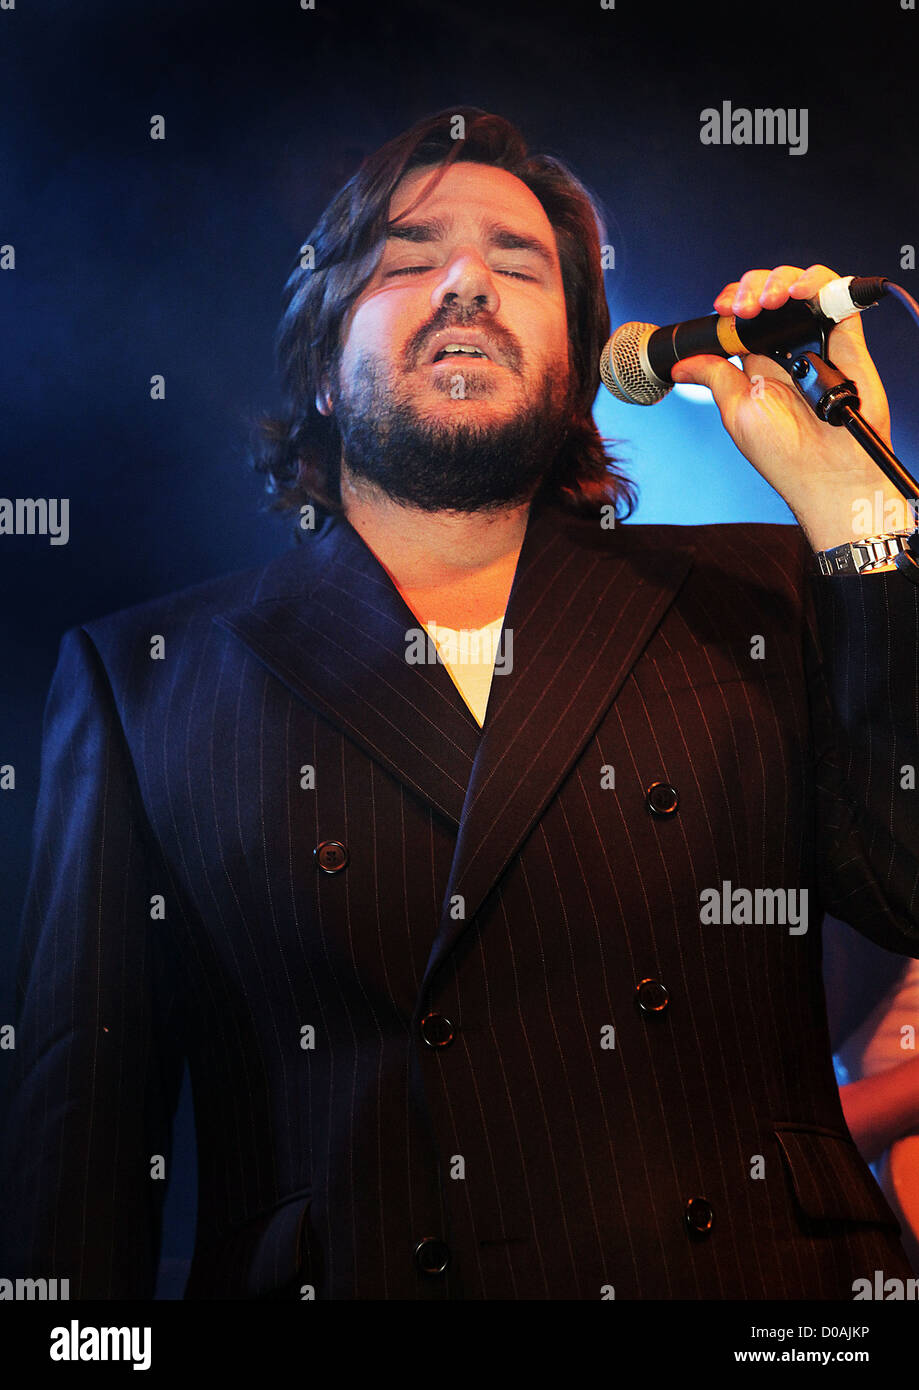 Matt Berry of Mighty Boosh and IT Crowd fame performing at Liverpool Masque. Liverpool, England - 23.11.10 - Stock Image